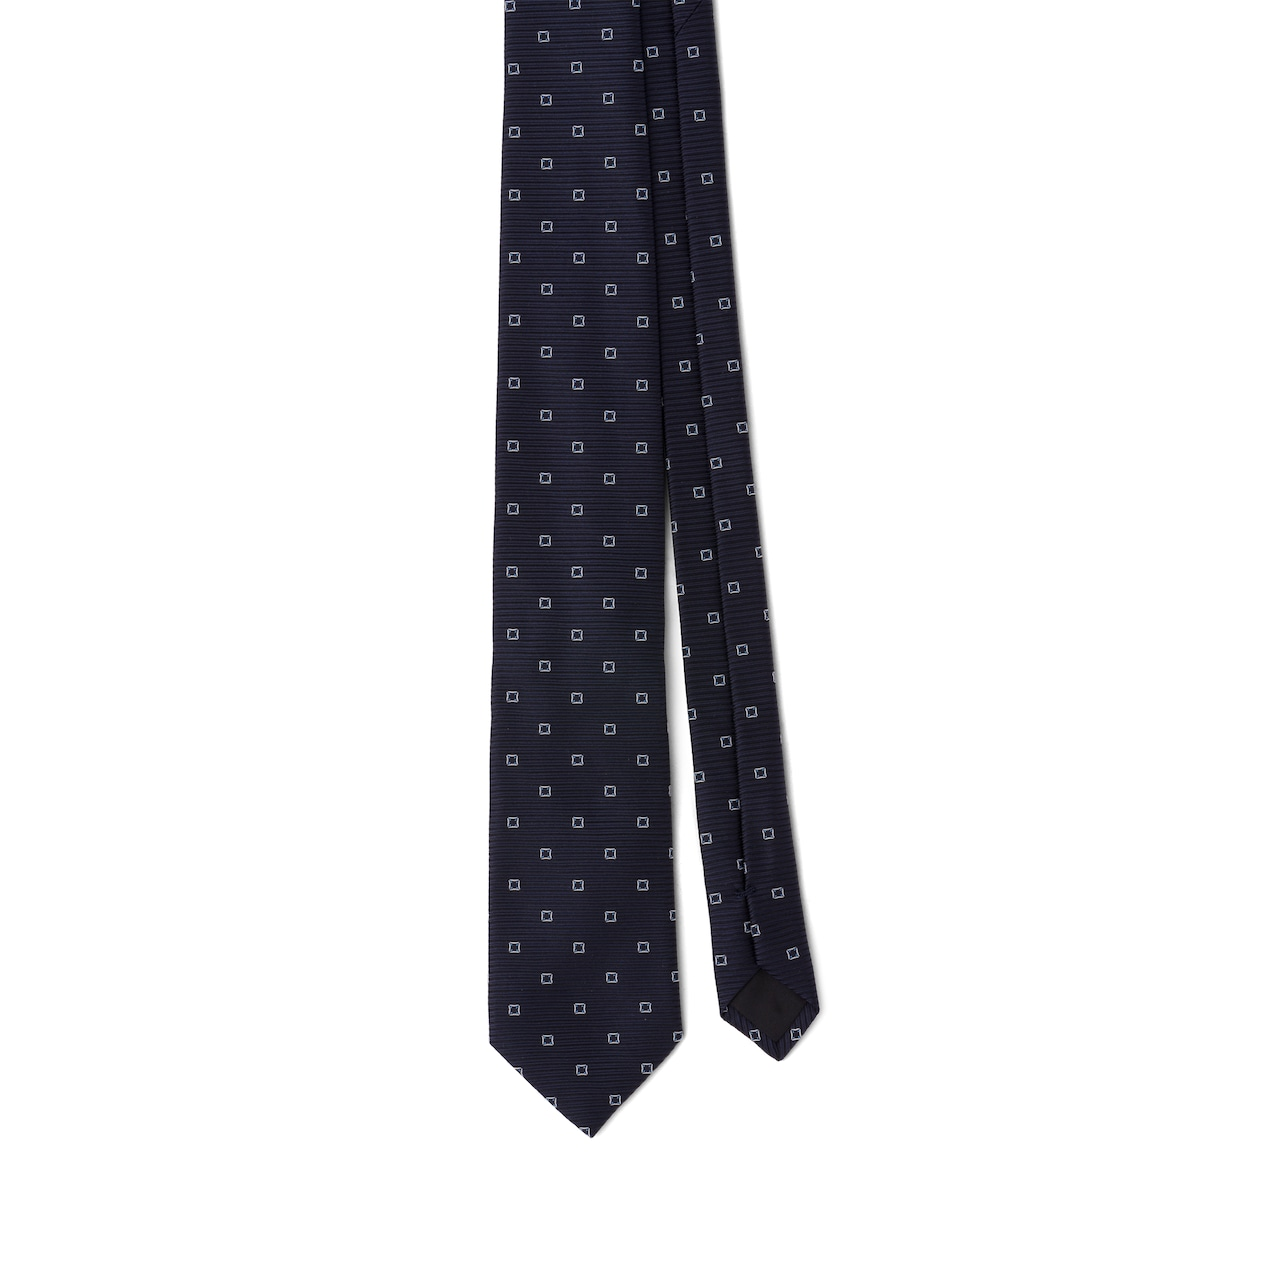 Prada Tie with all-over print 1